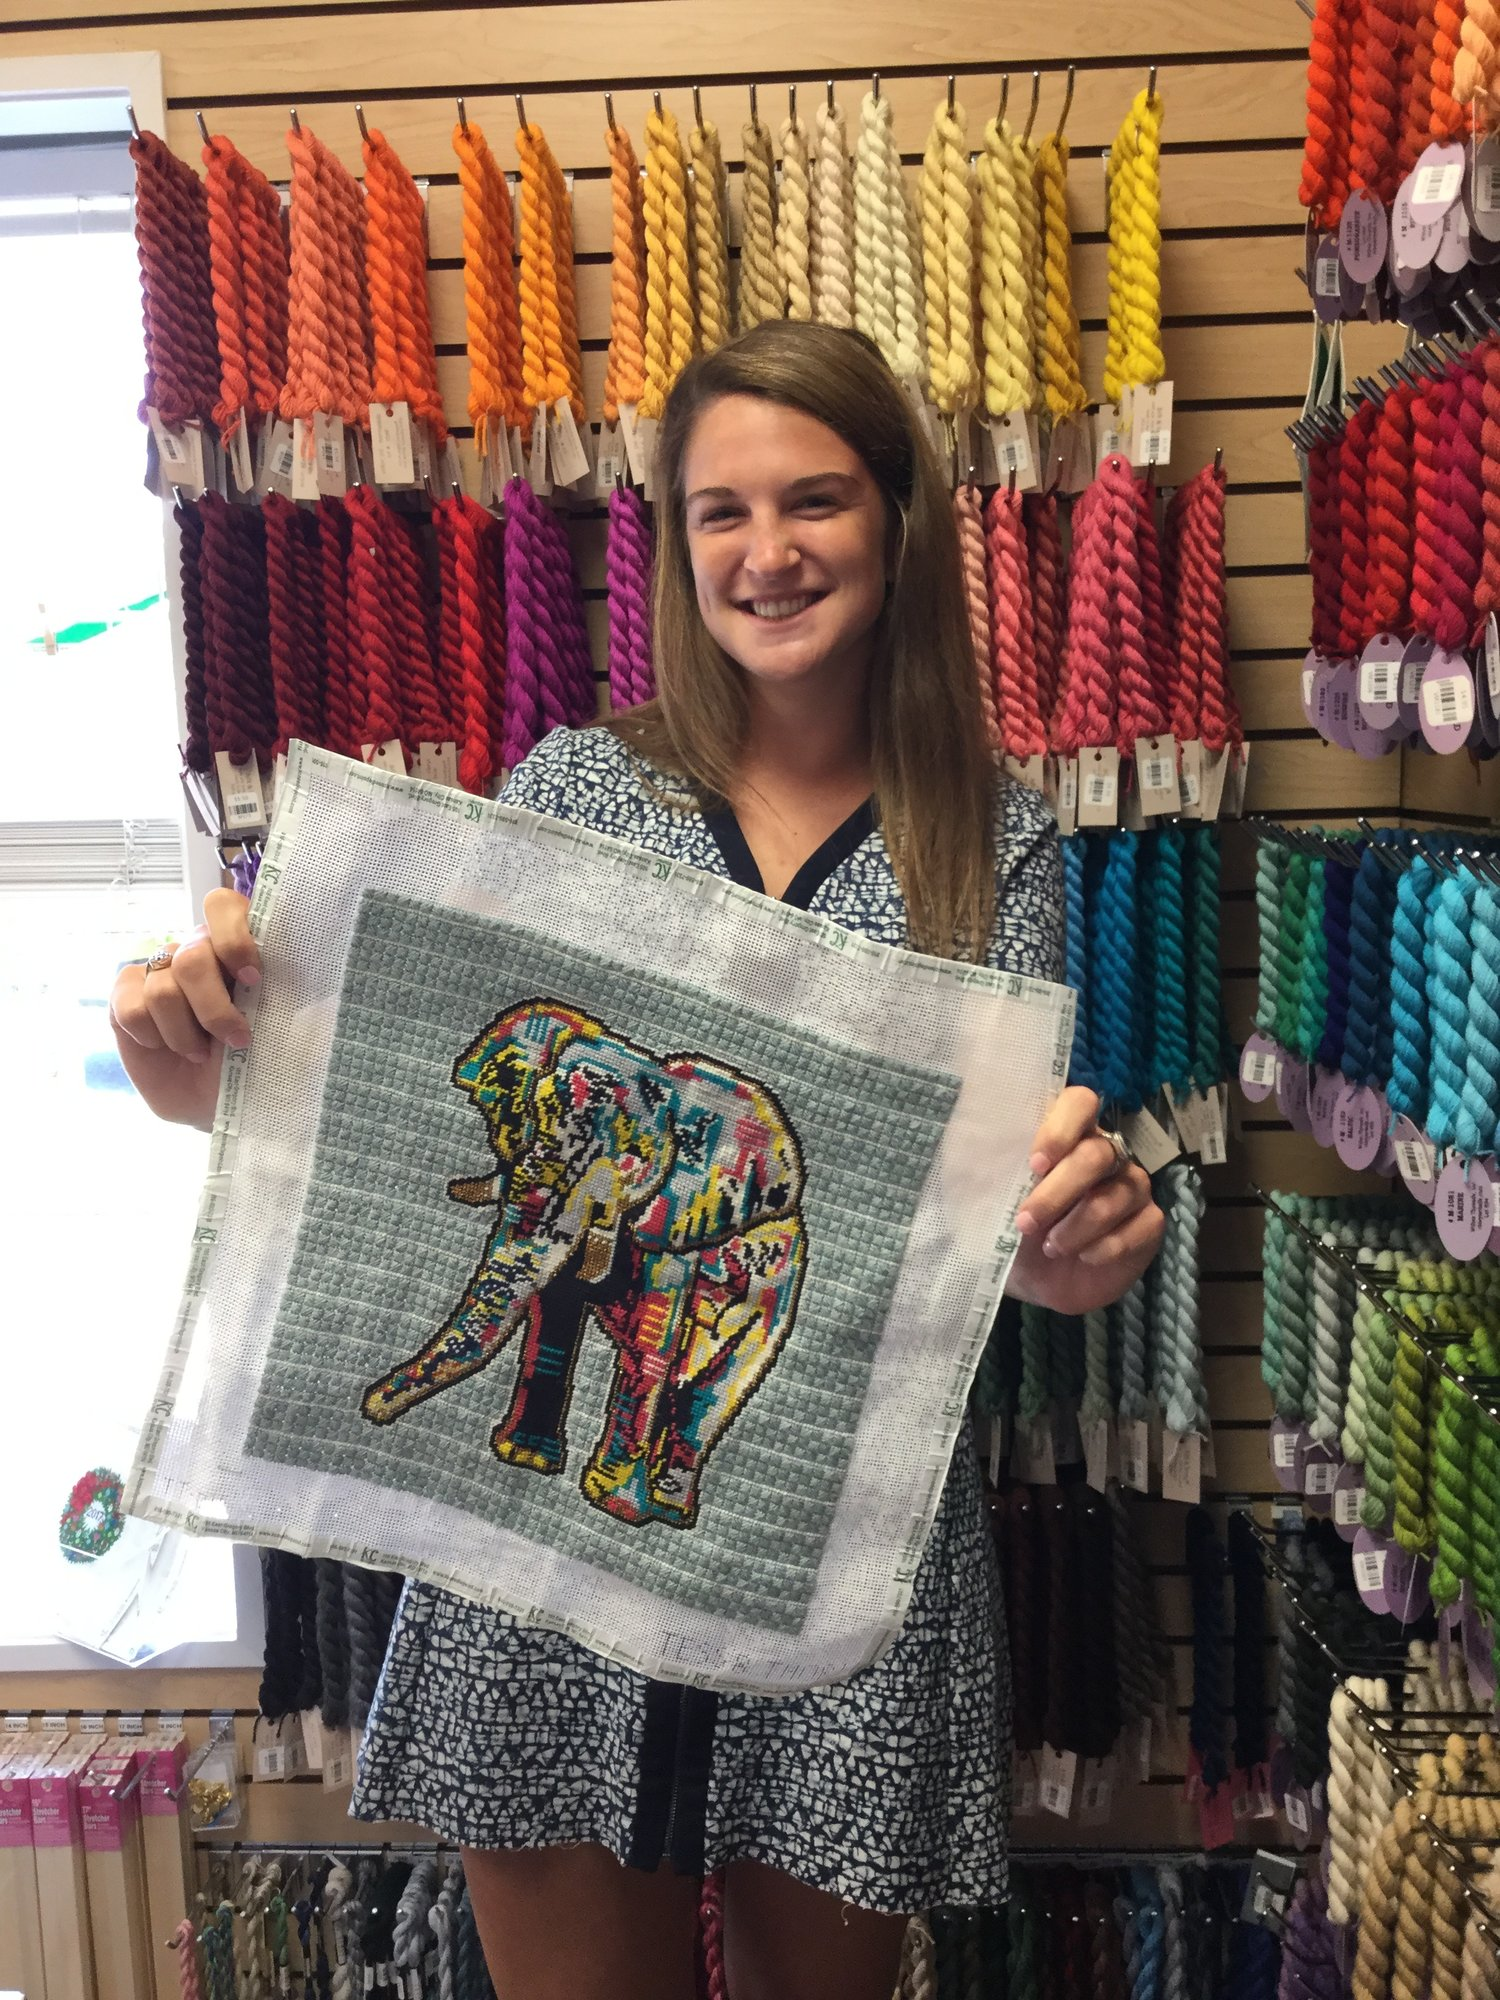 Carolyn, 19-year-old daughter of one of KC Needlepoint's co-owners, proudly displays her accomplishment, a beautiful finished canvas of a contemporary design by Thorn Alexander .